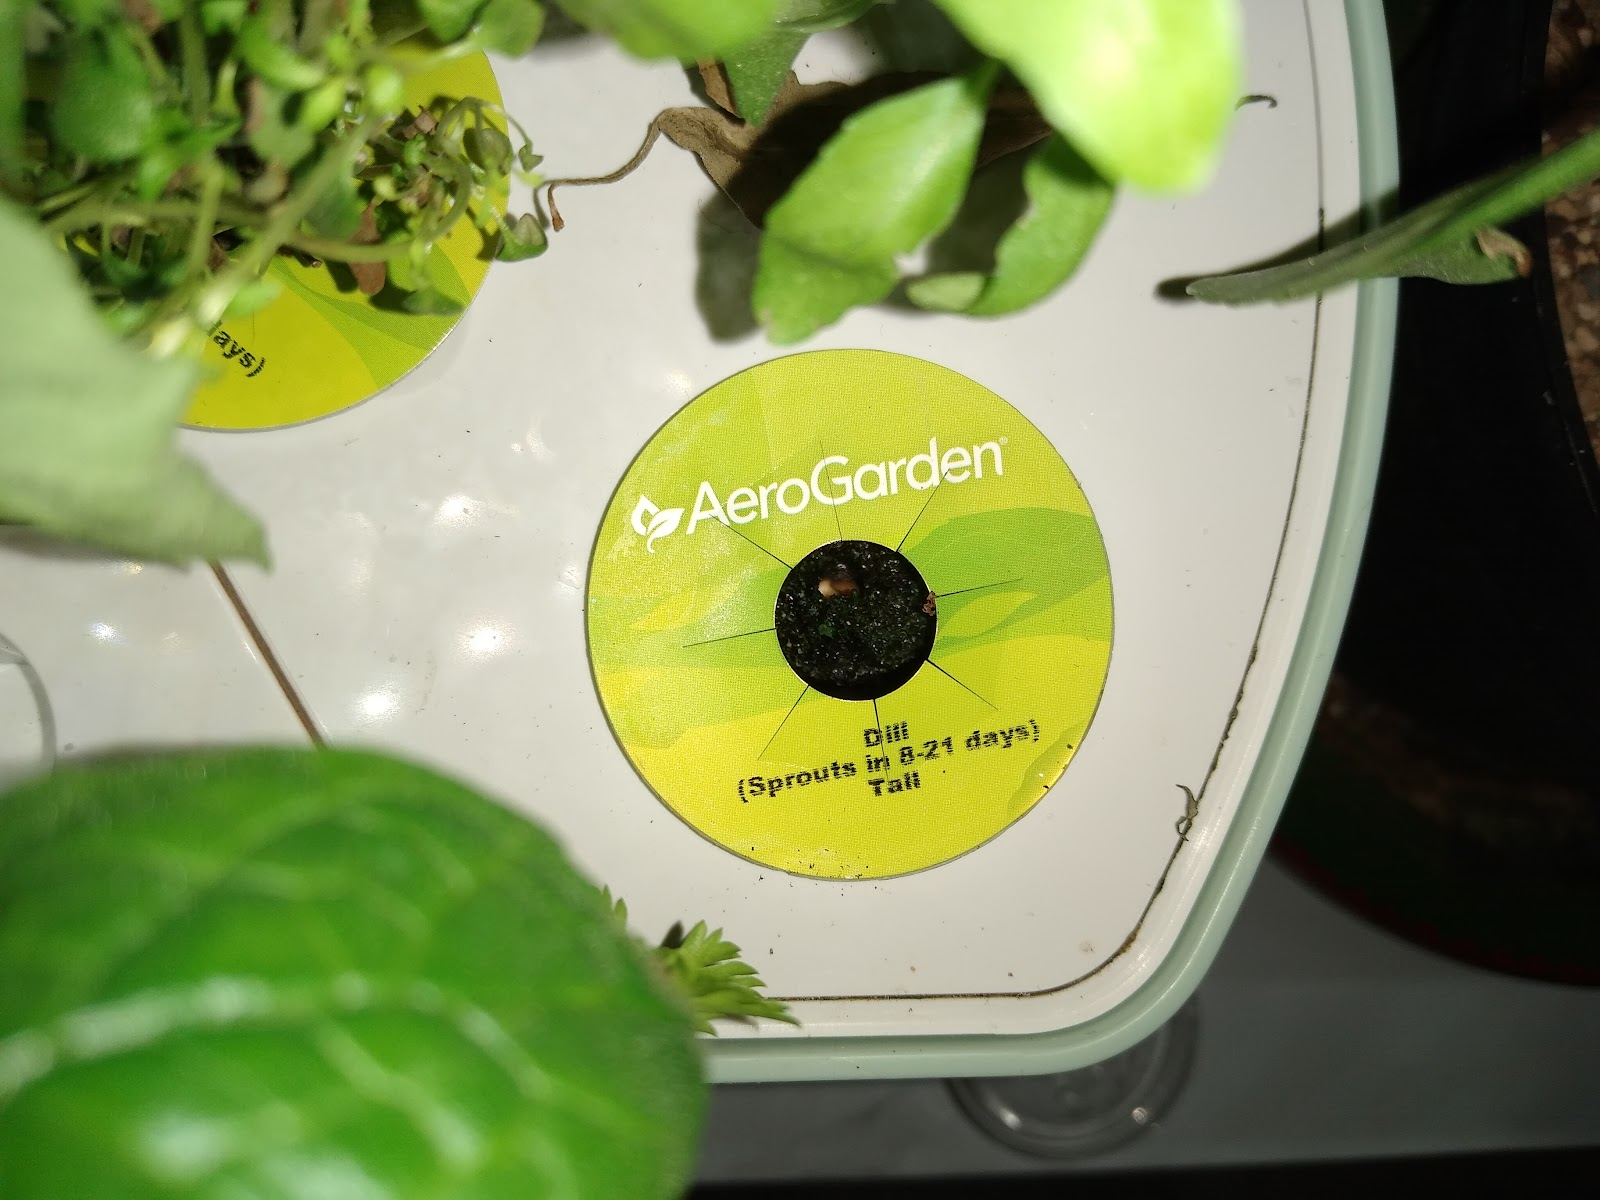 tomato seeds in an aerogarden picture